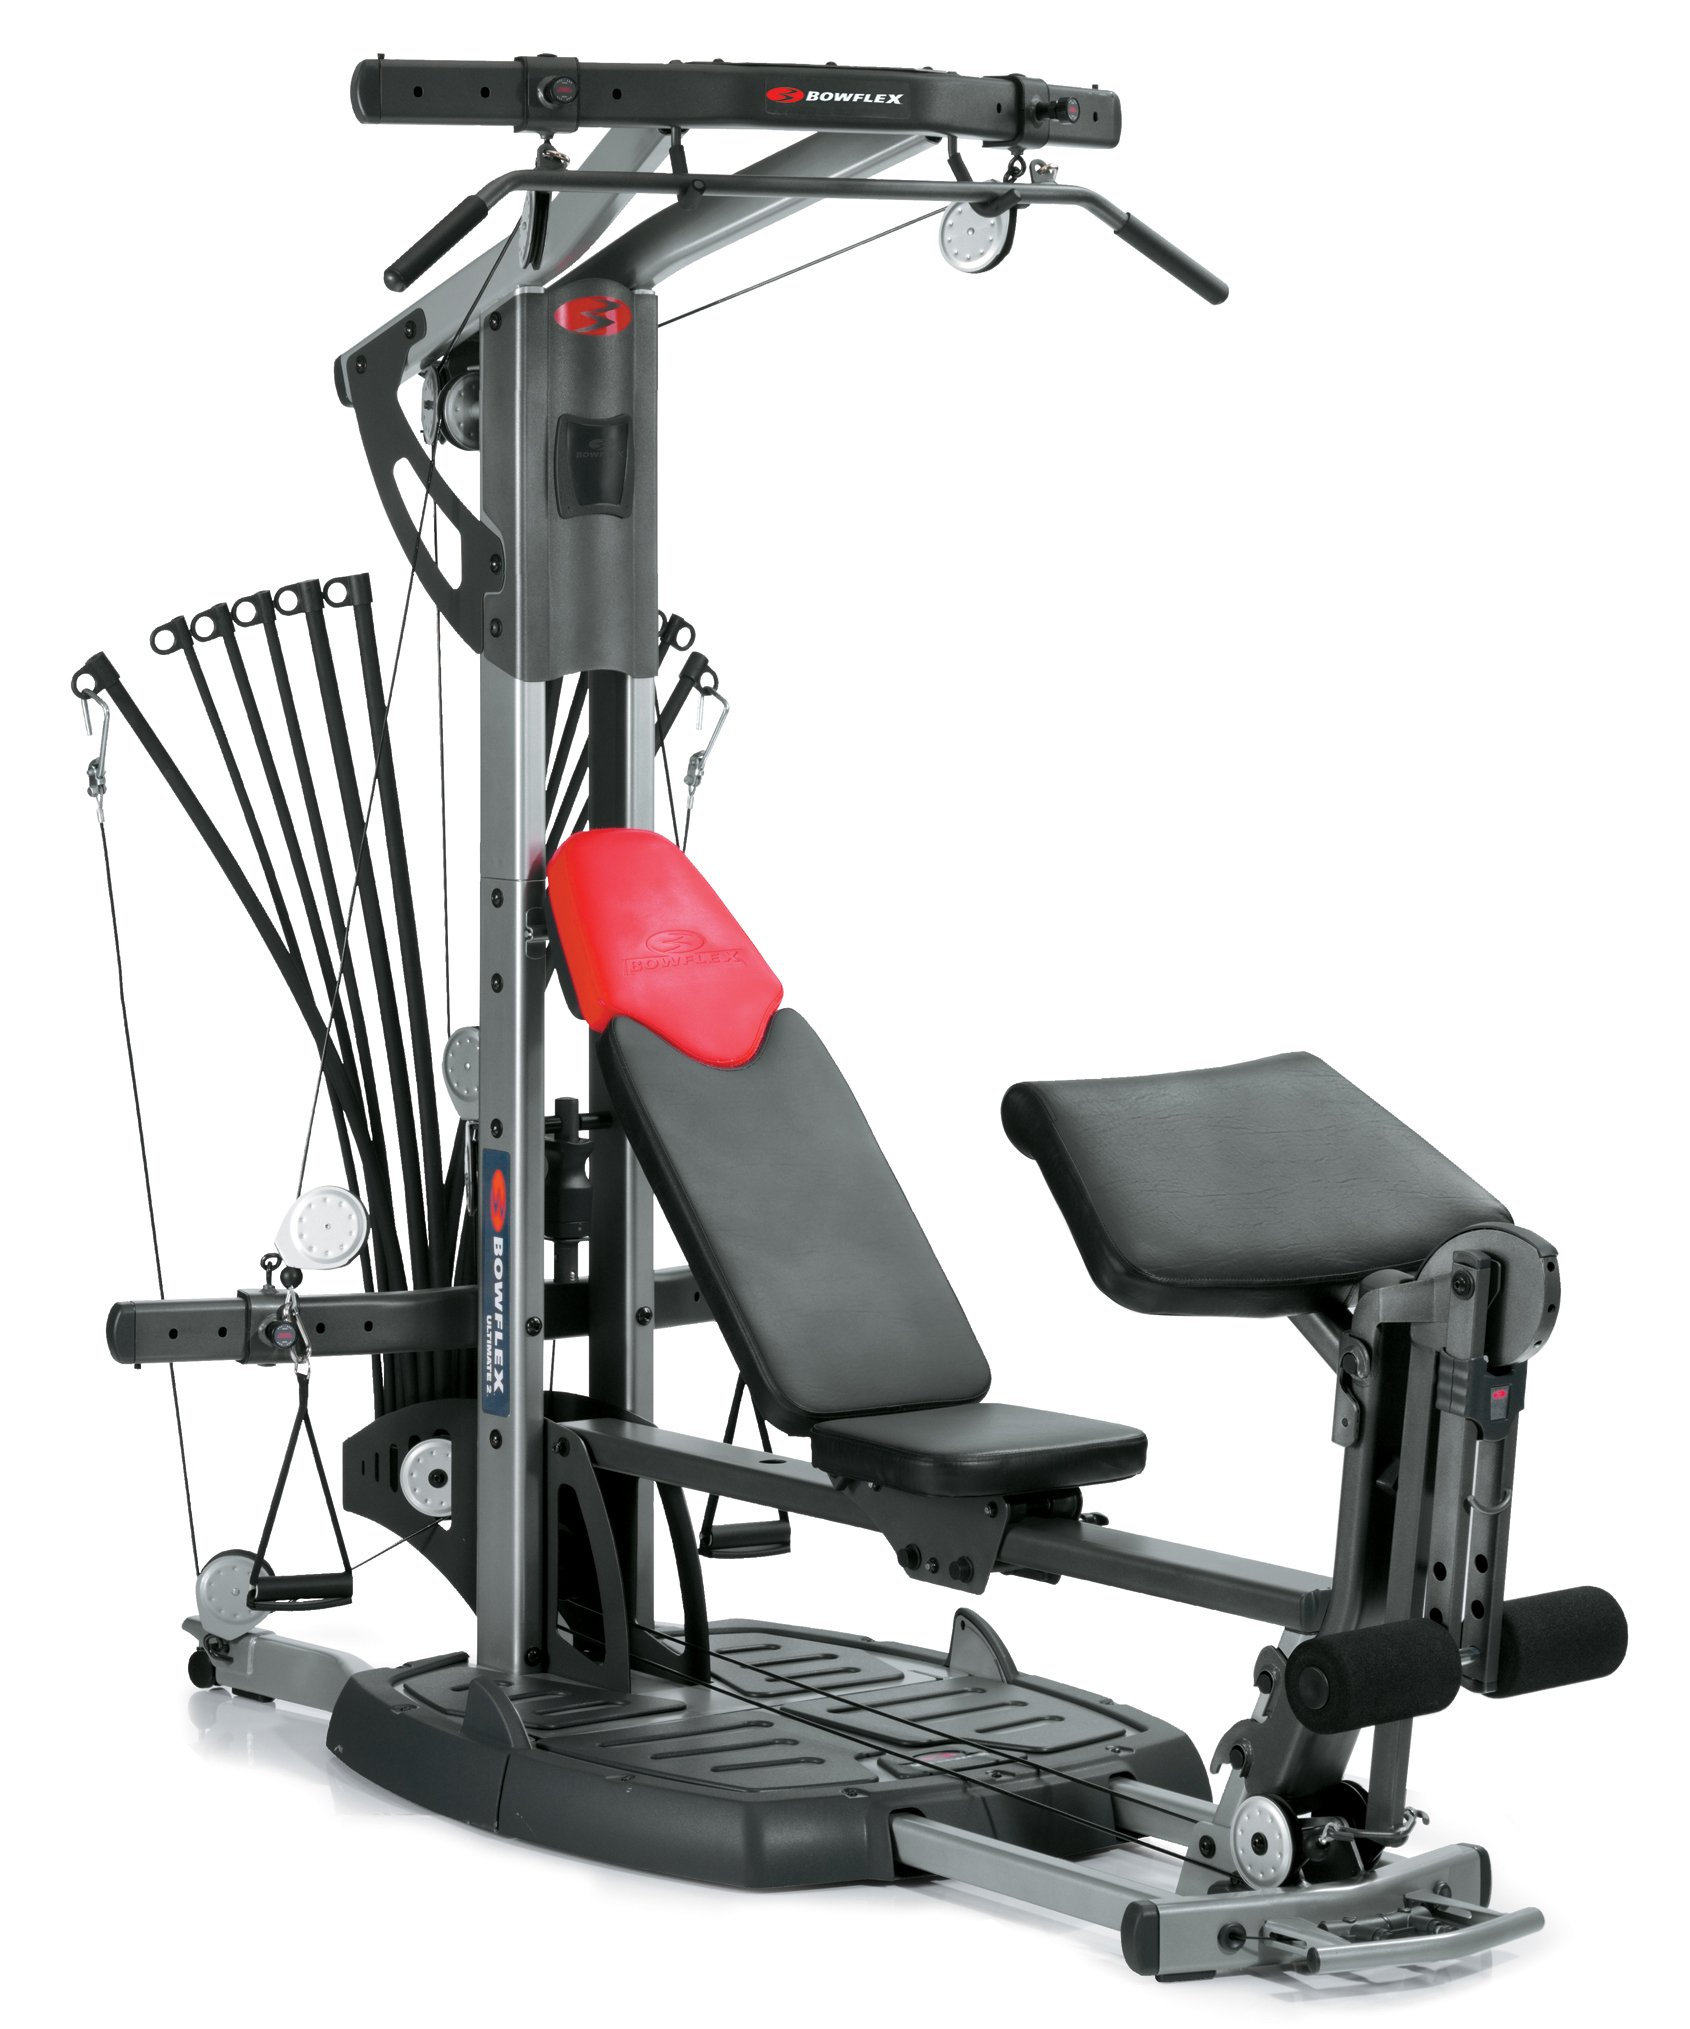 Fitness Equipment Parts: Bowflex Ultimate 2 Review